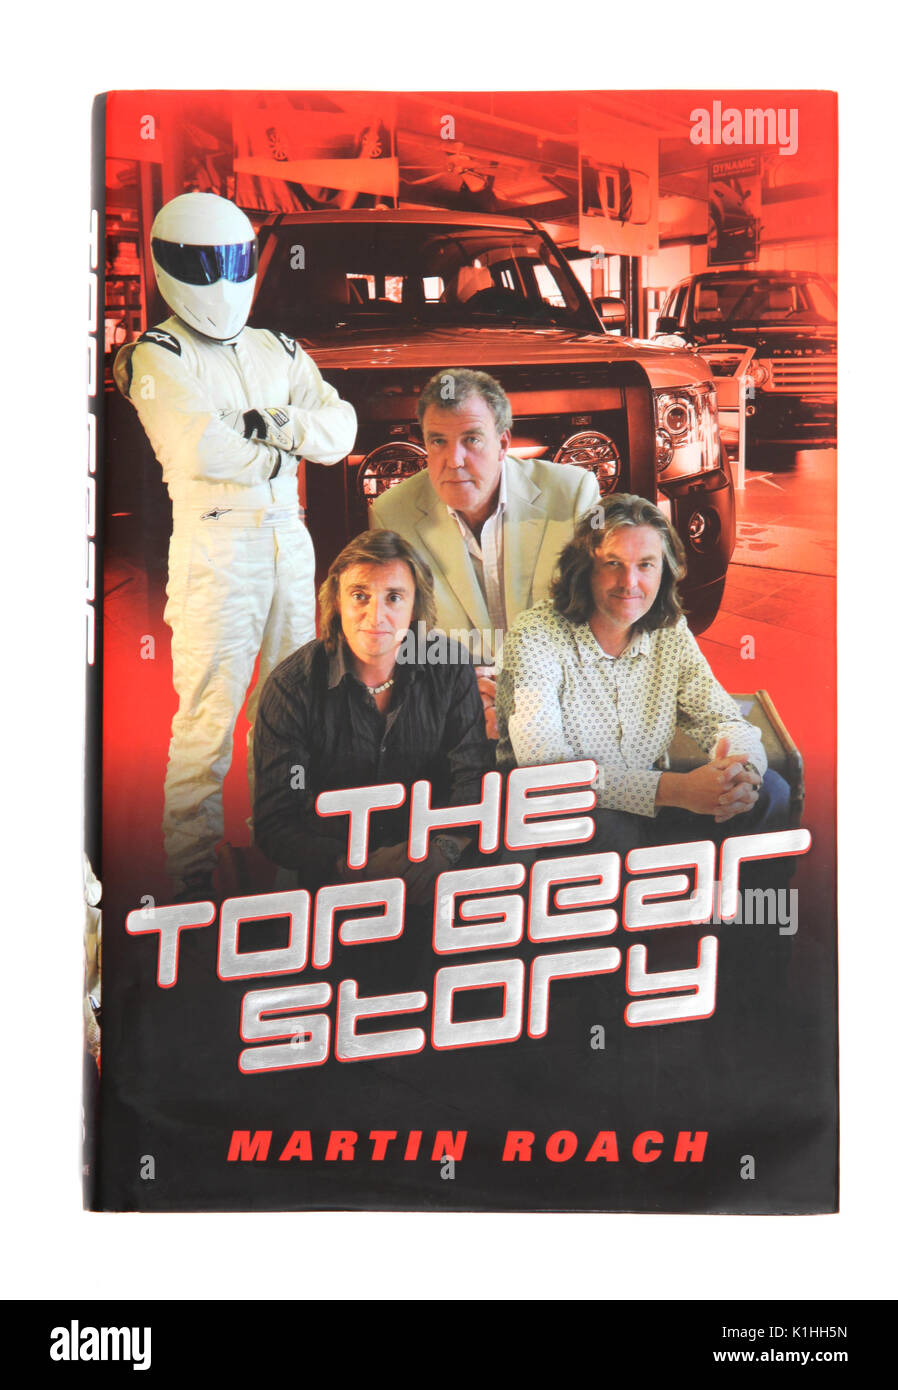 The book The Top Gear Story by Martin Roach - Stock Image